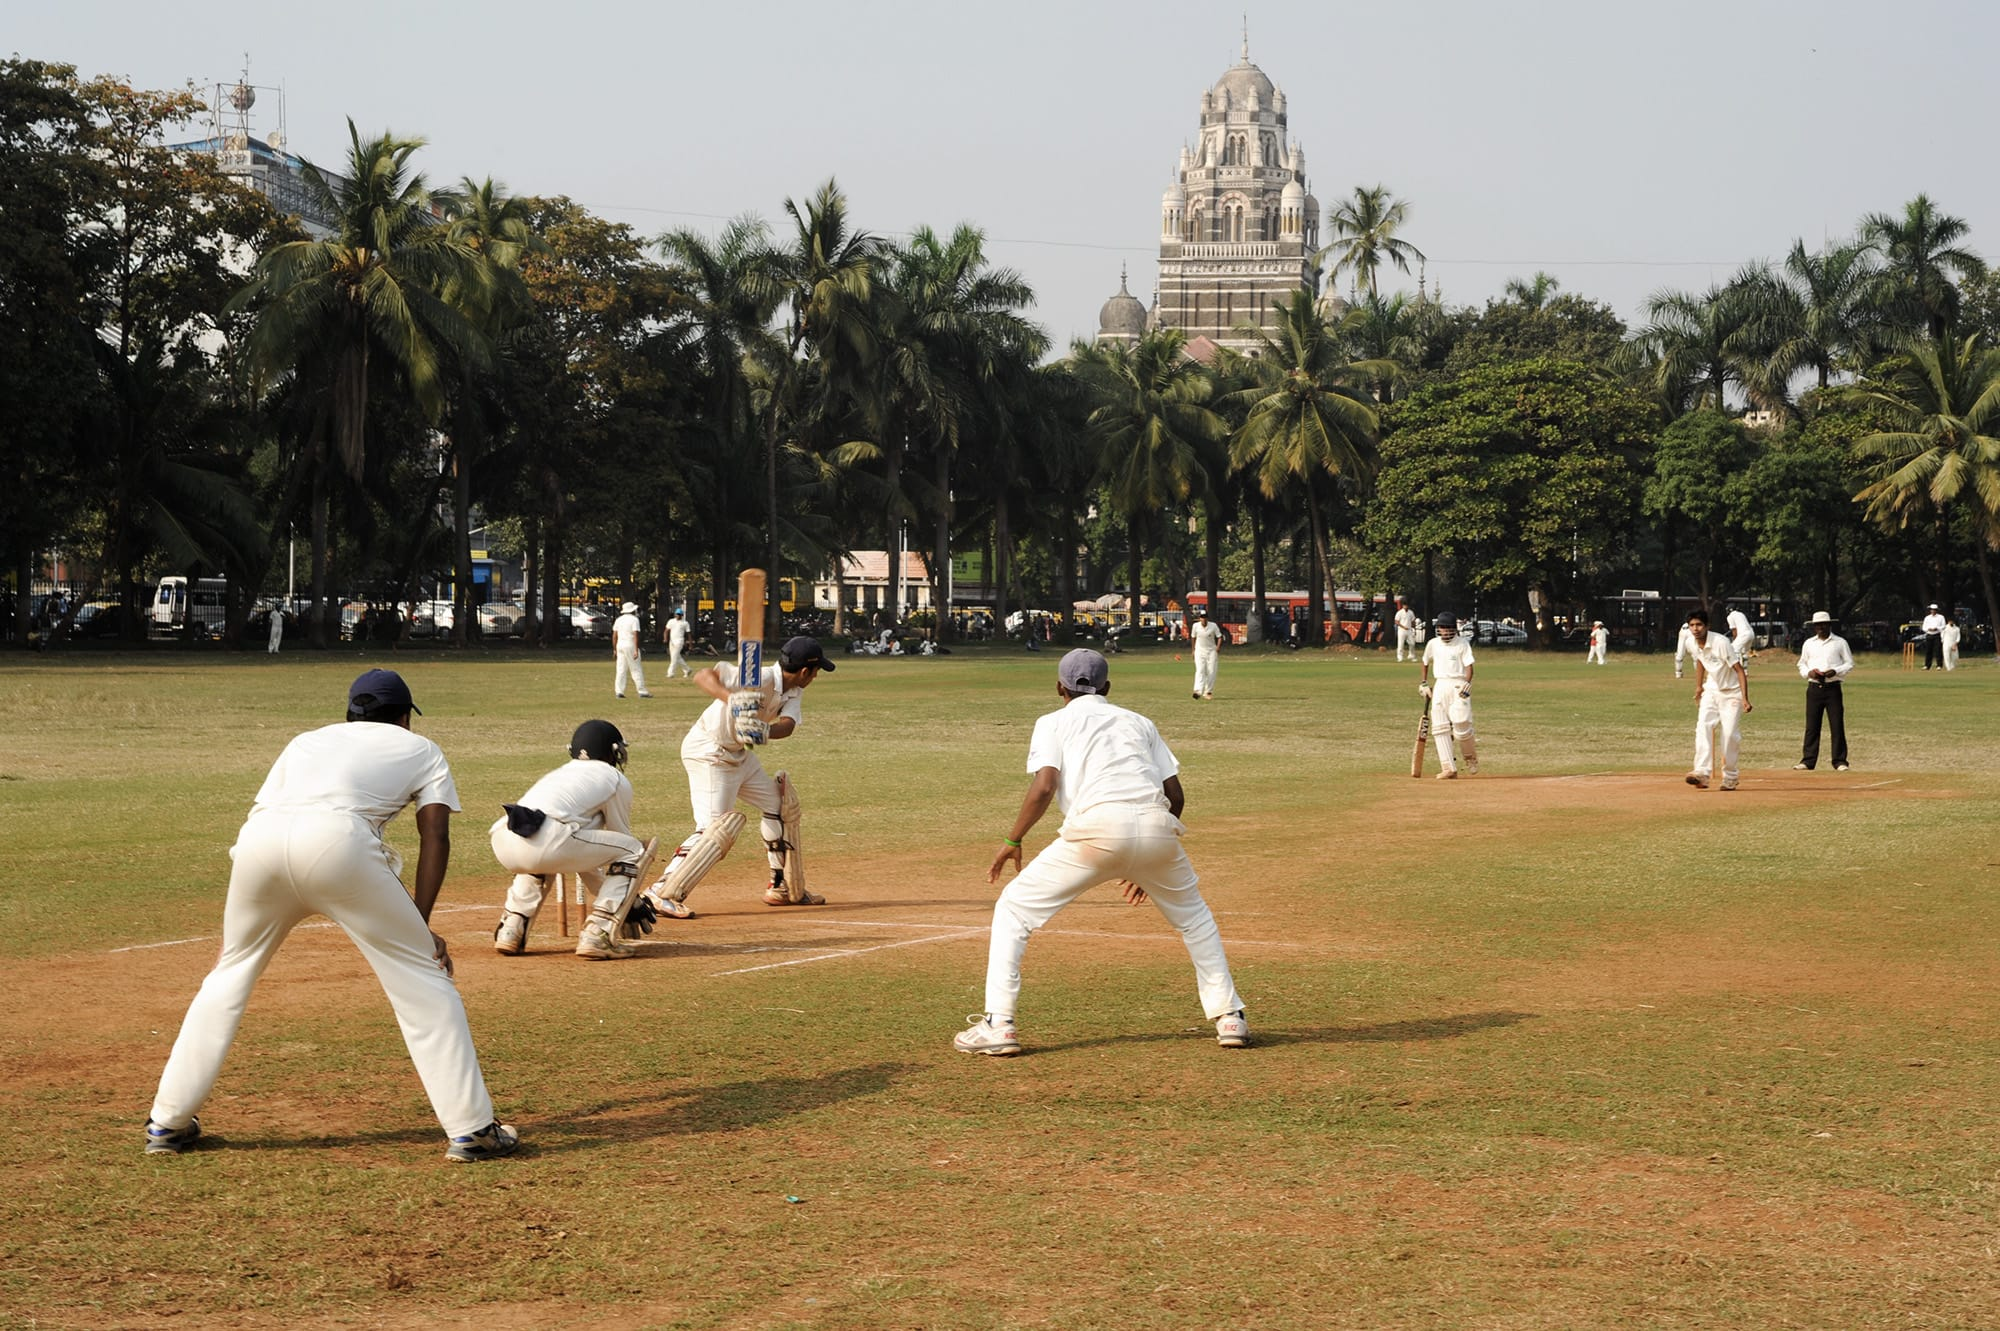 Cricket at the Maidan in Mumbai